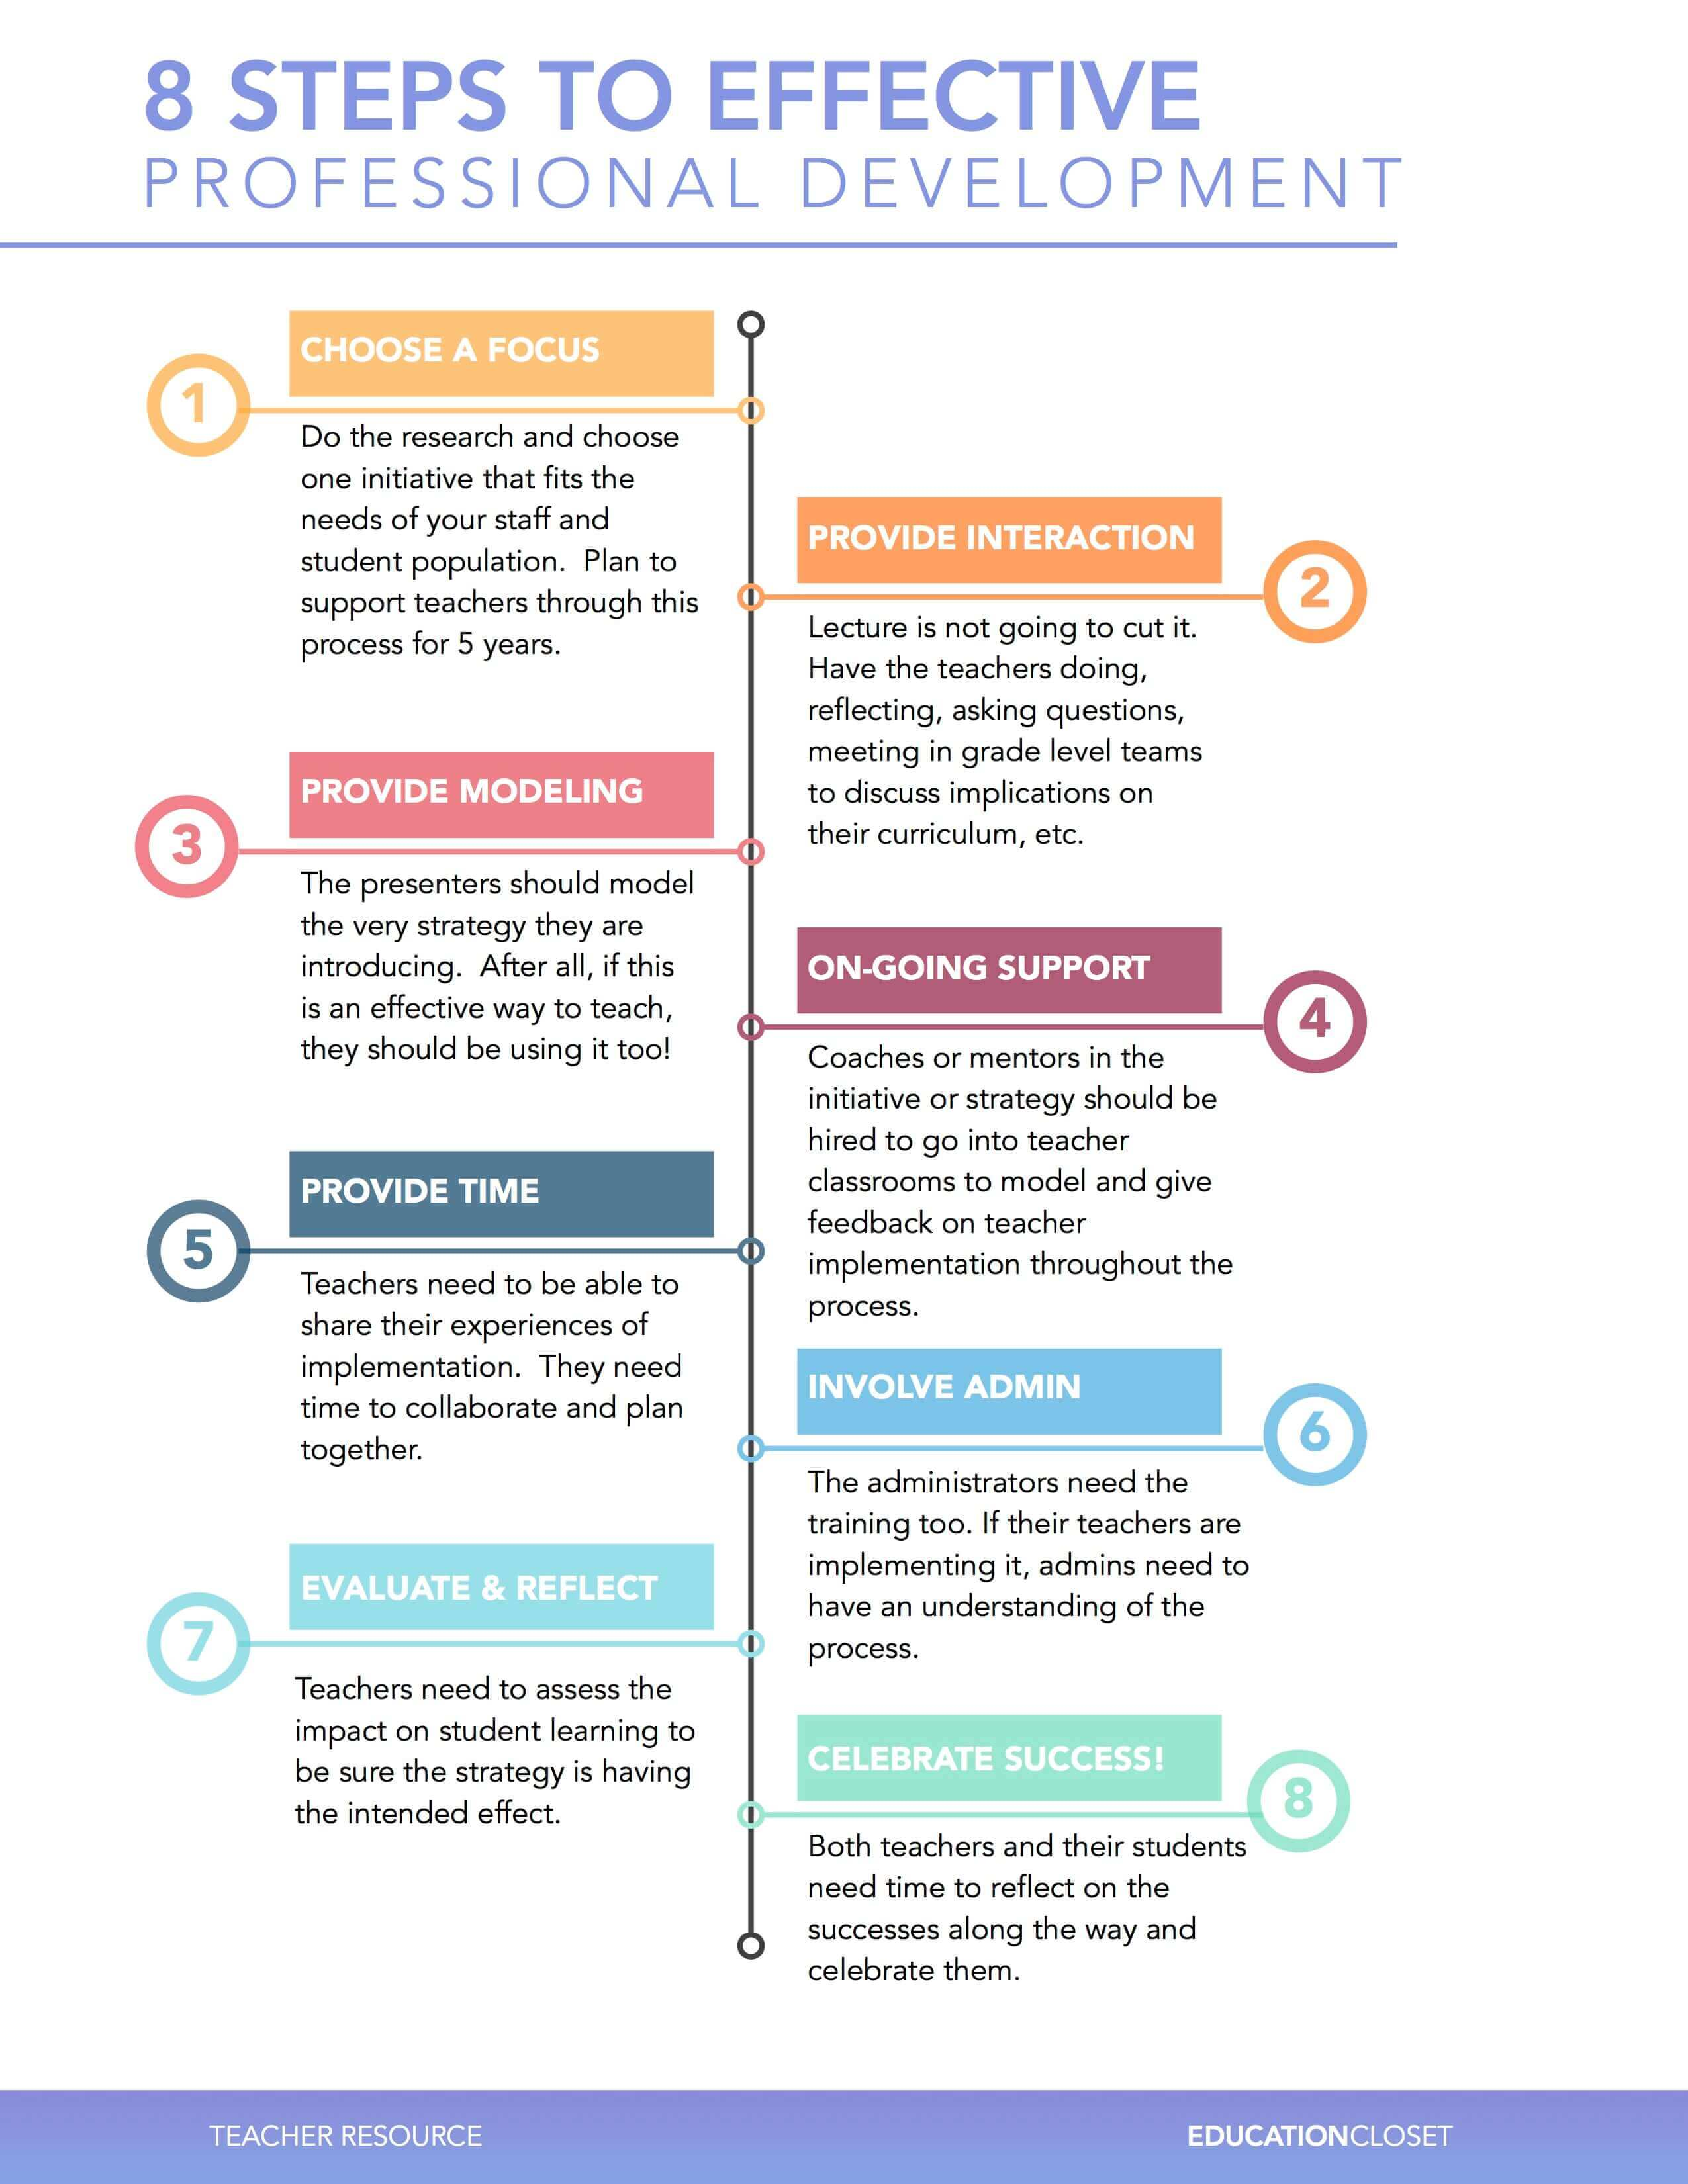 8 Steps To Effective Professional Development